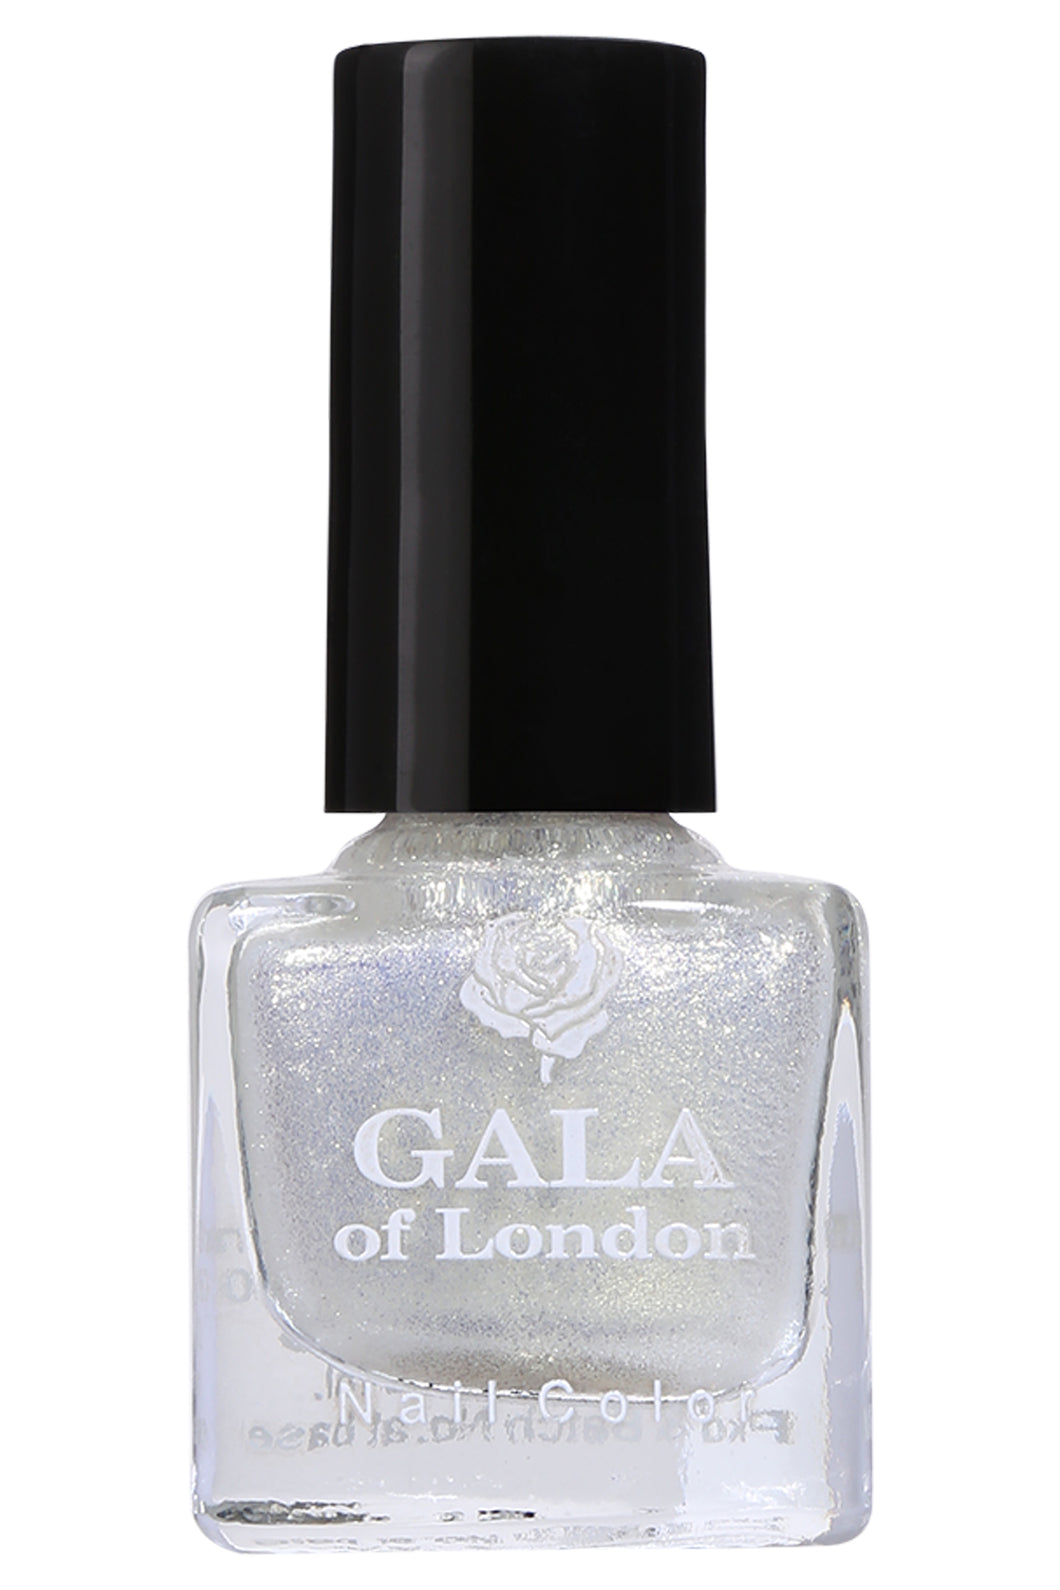 Gala of London S Series Nail Polish - White Shimmer Glossy S6